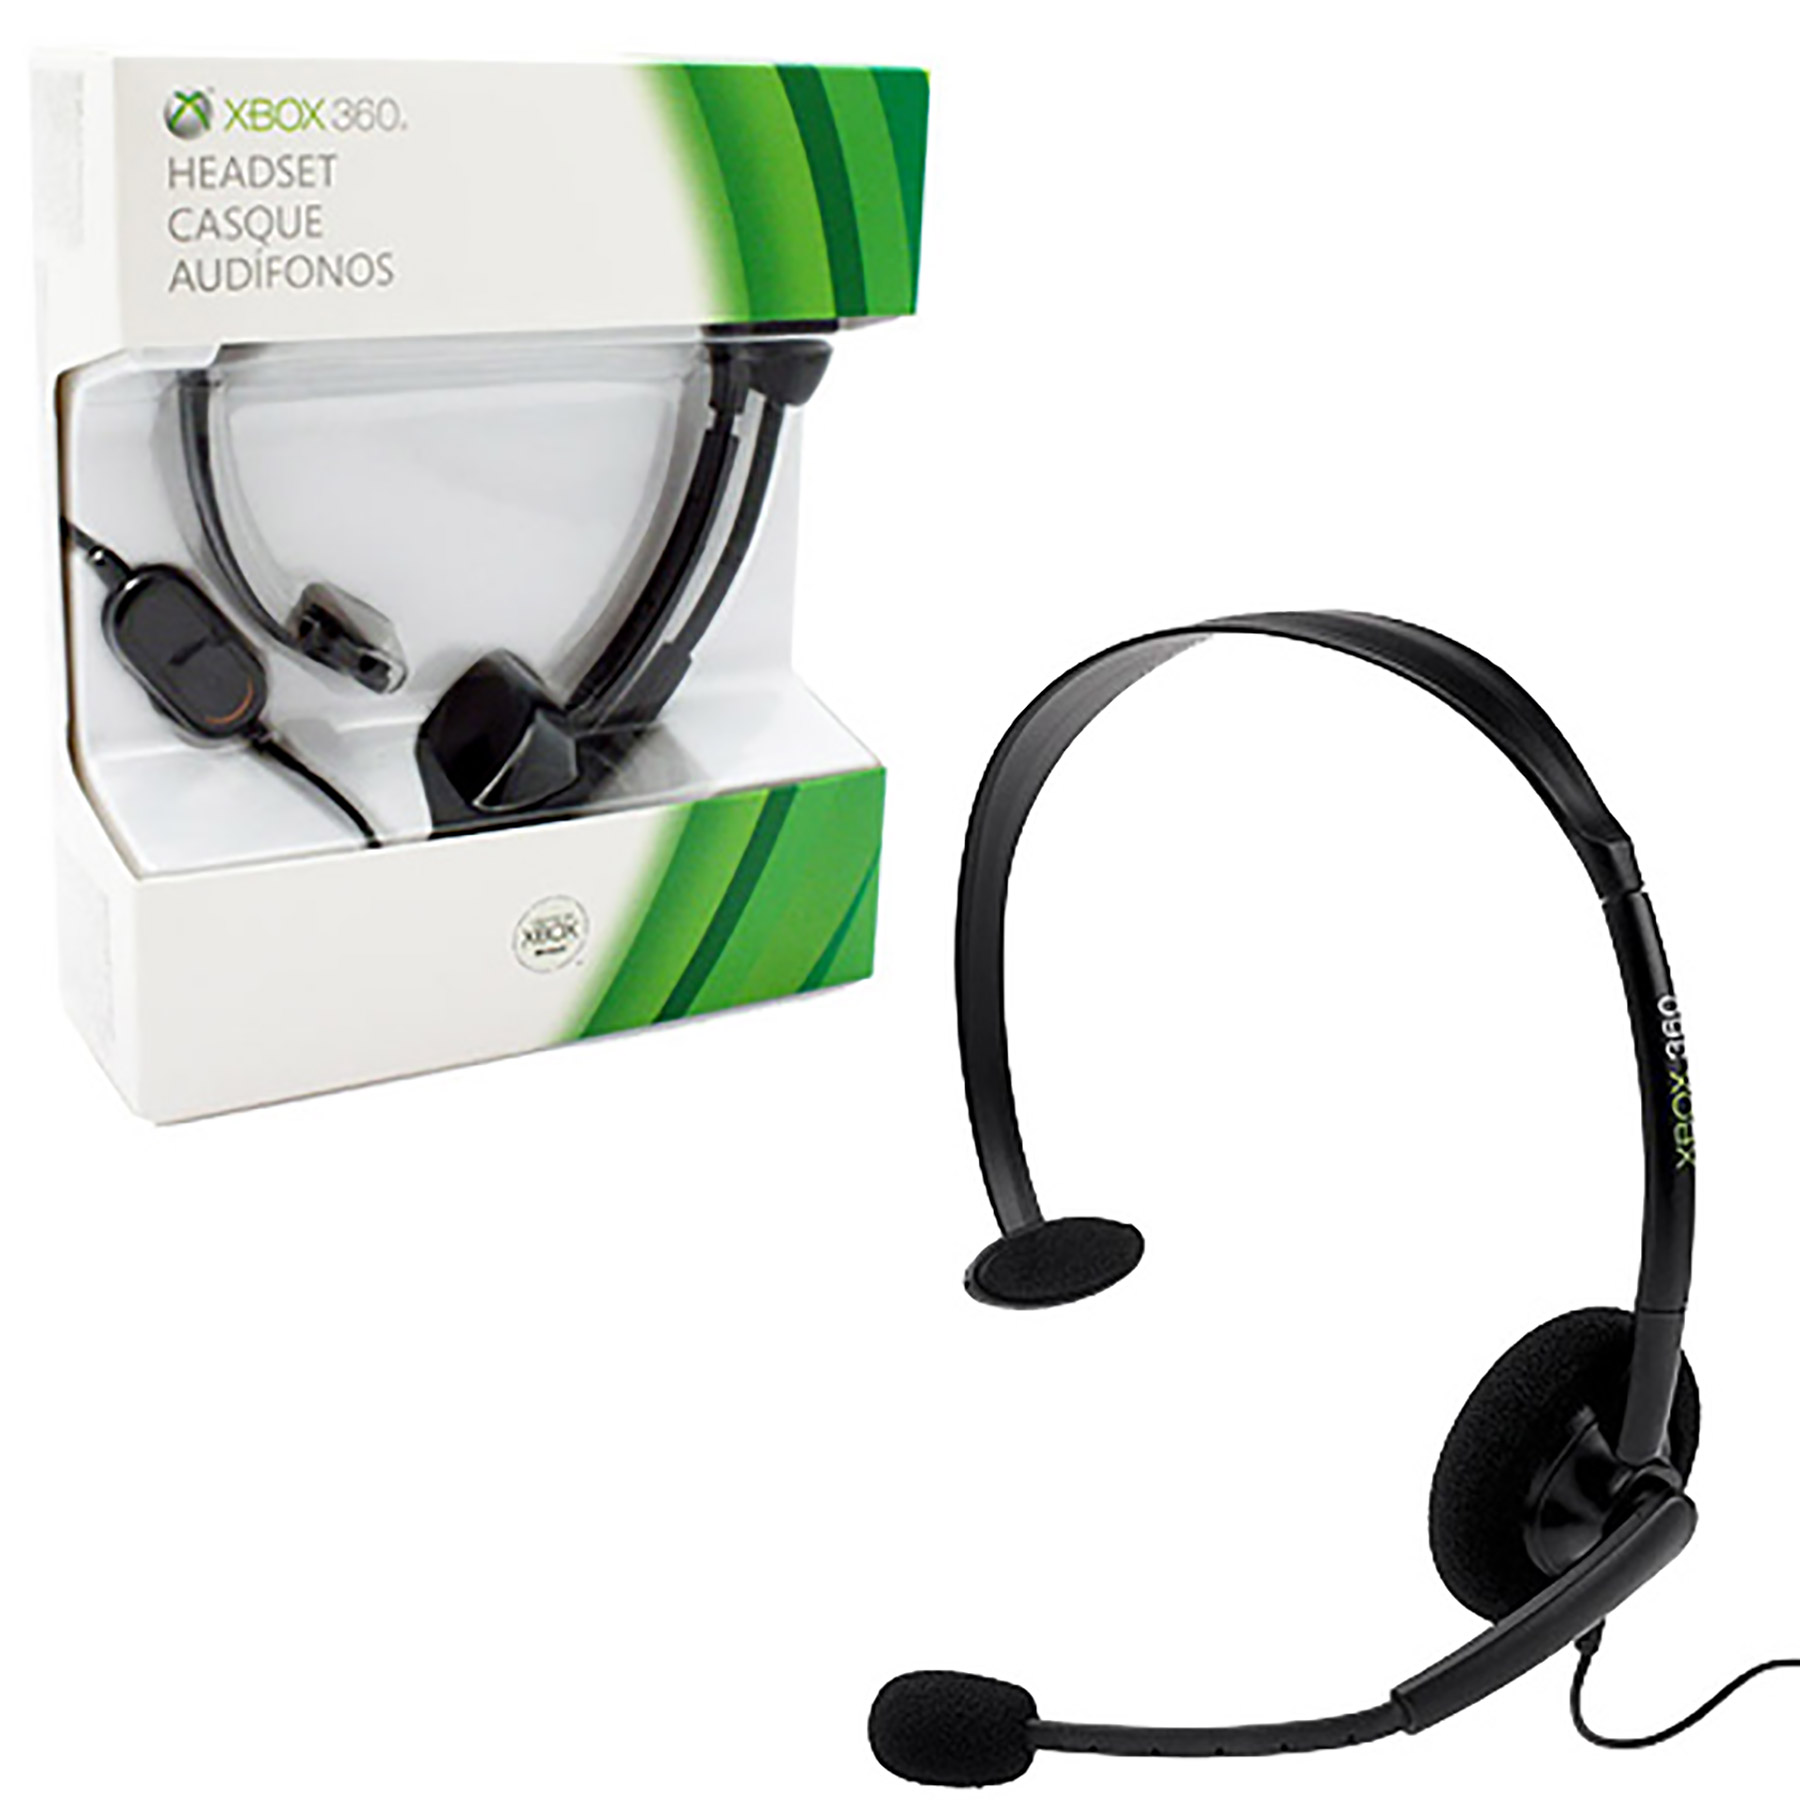 xbox 360 headset wiring diagram sr7 avr wired black new microsoft